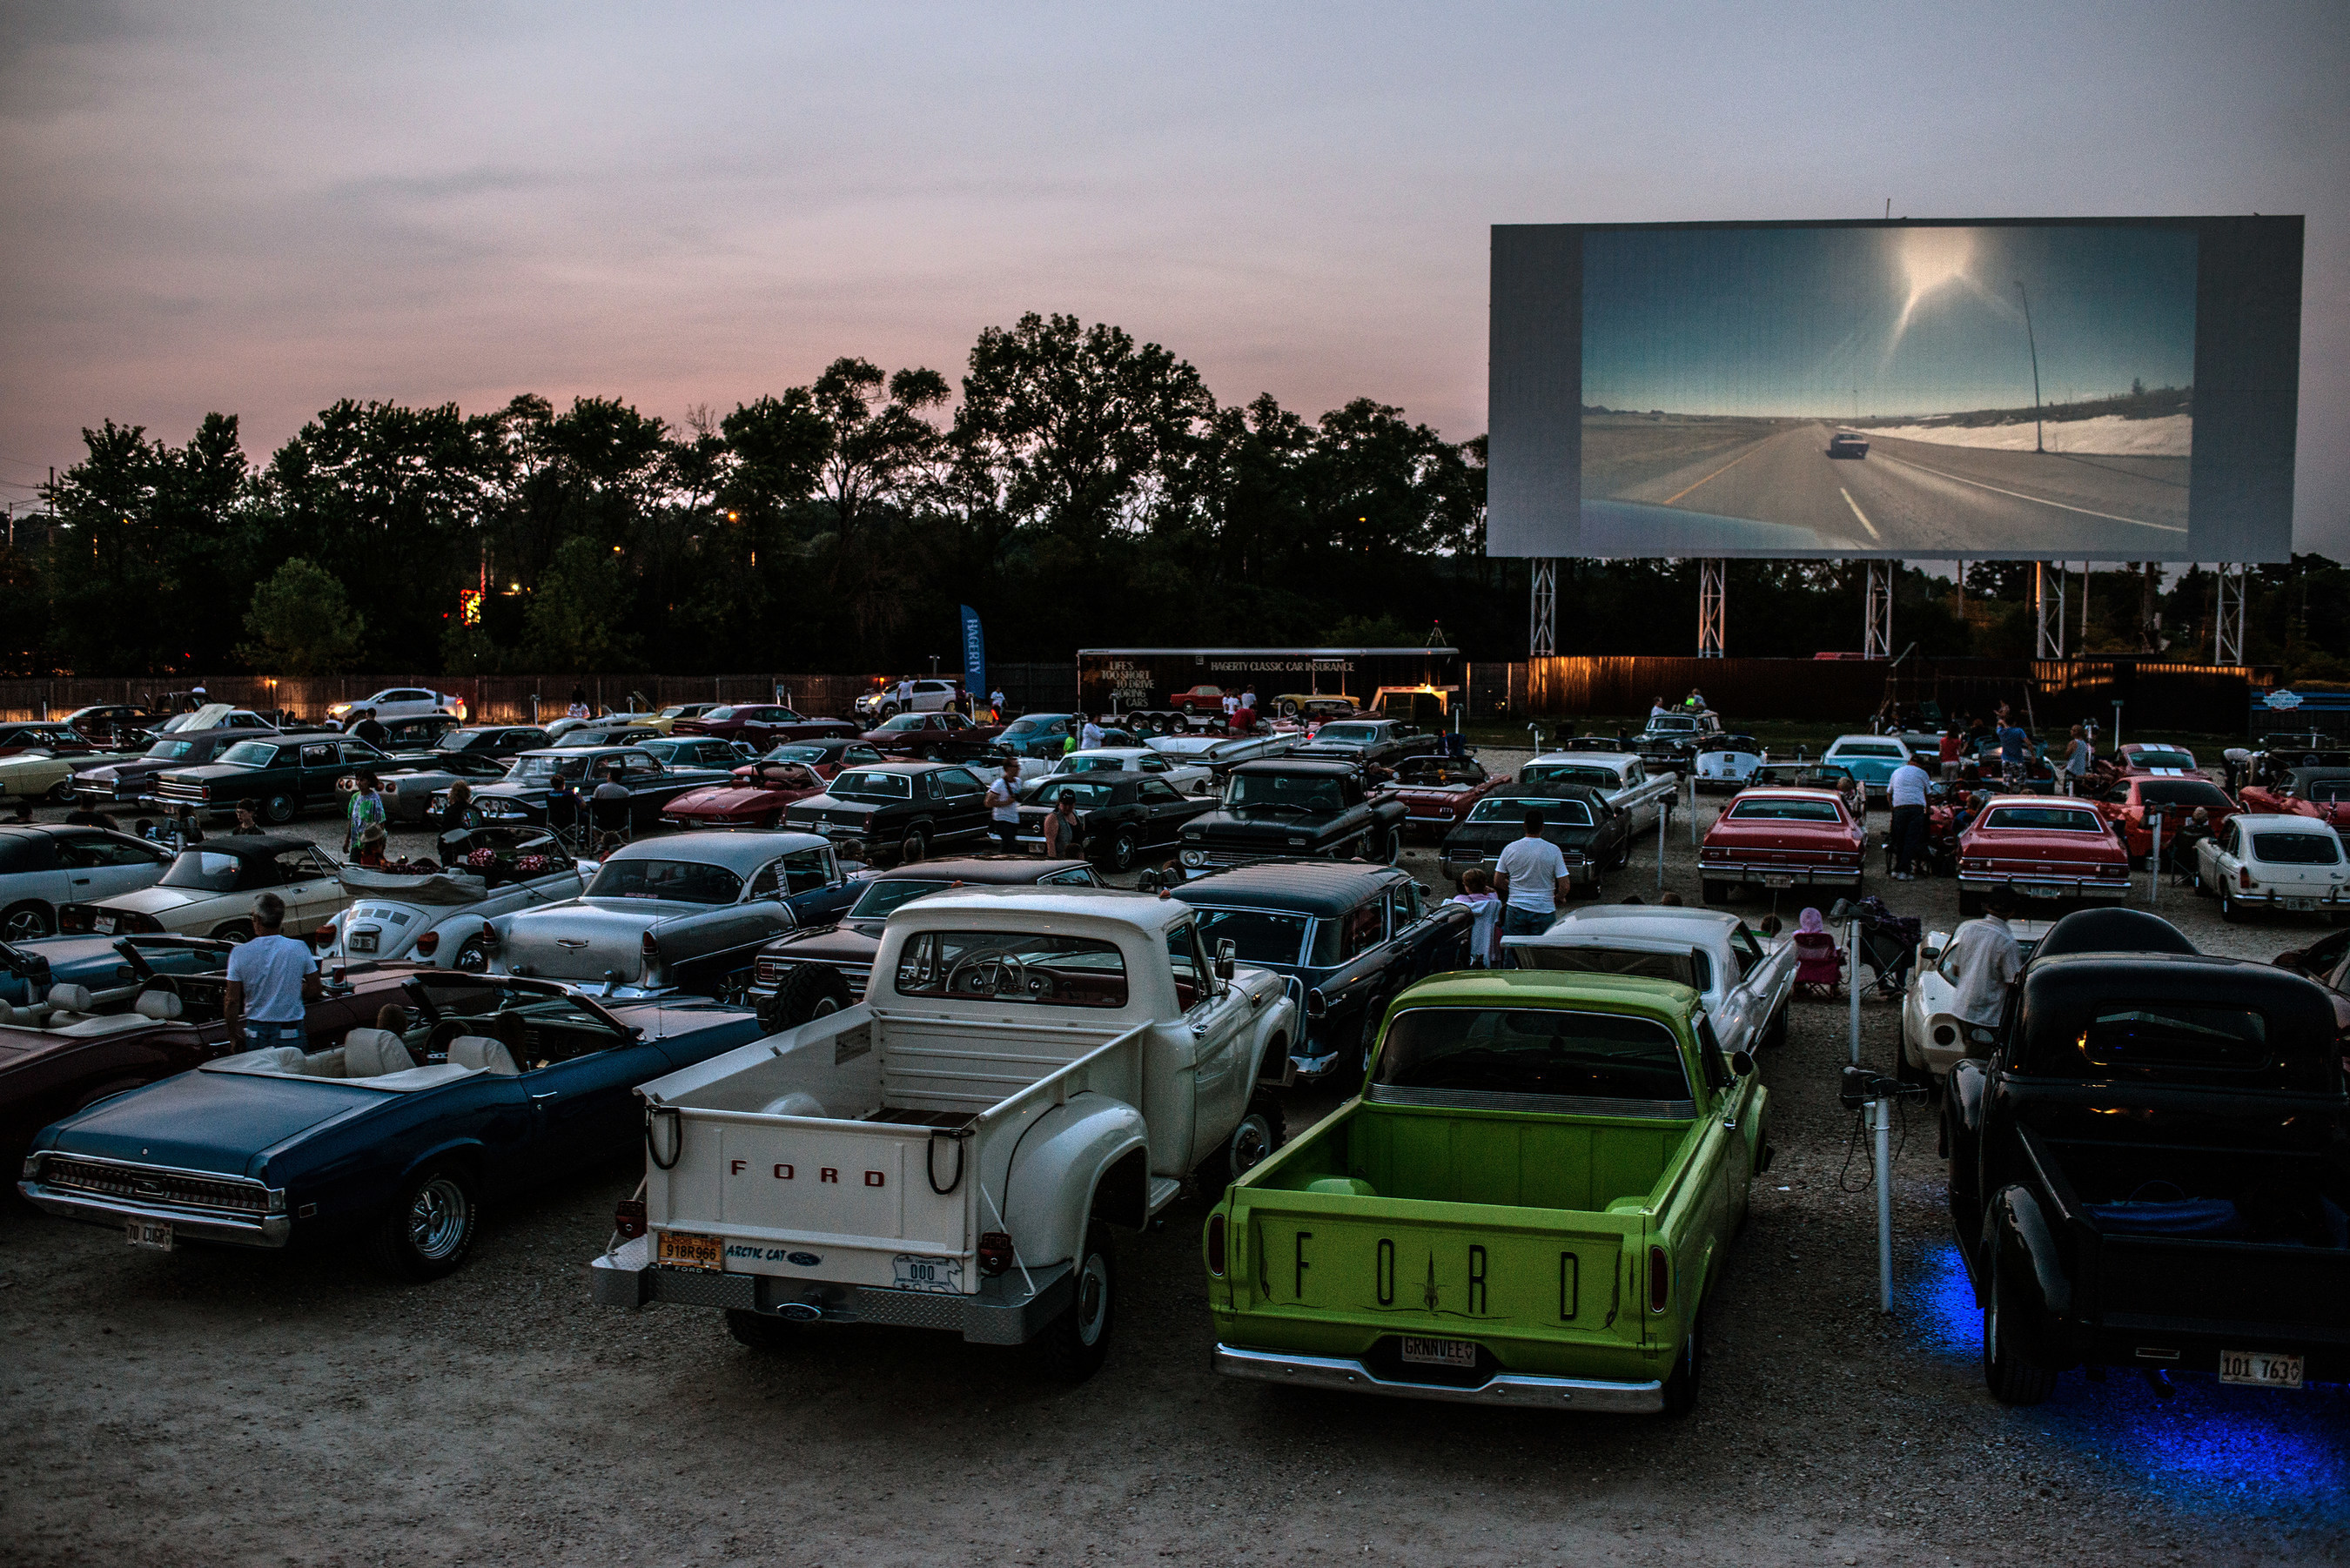 Hagerty Classic Cars magazine took over a Chicago-area drive-in to celebrate the 6th annual Collector Car Appreciation Day